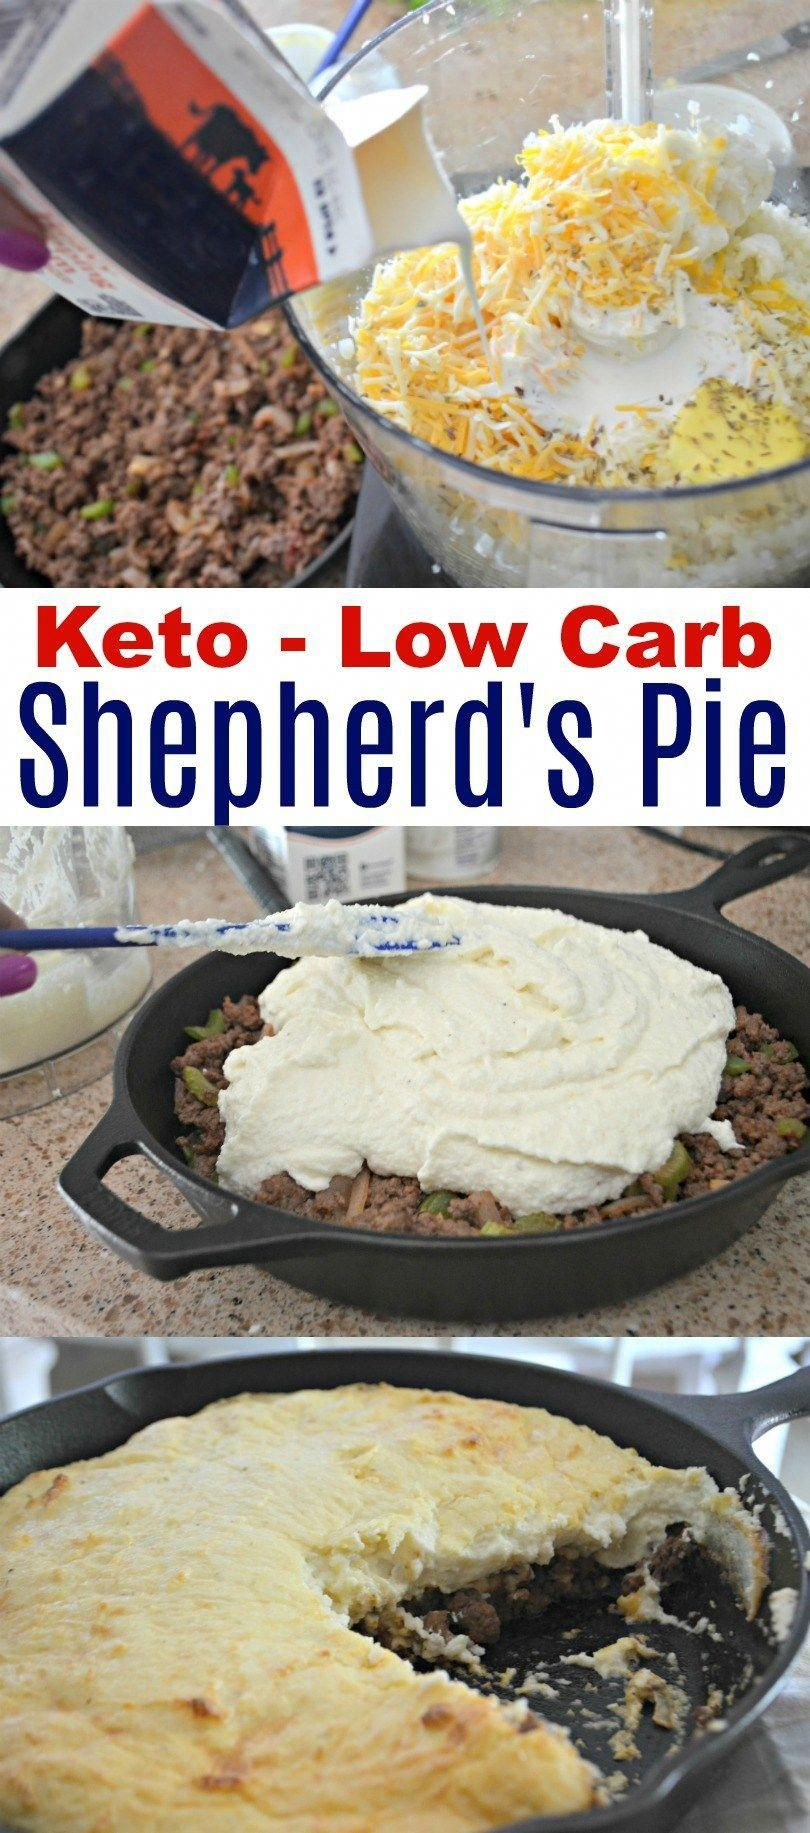 Best Keto Shepherd's Pie This delicious one-pan dish is an easy family-pleaser. Course Main Dish Cui...